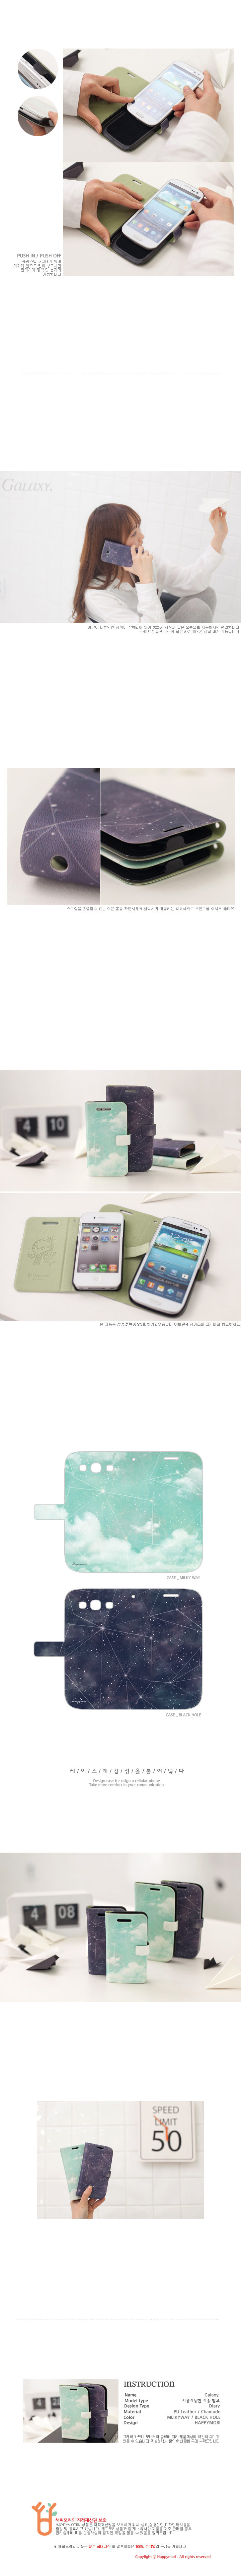 [HAPPYMORI] Flip Cover Case _ Galaxy(iPhone4_4s,iPhone5_5s,iPhone6_6s)